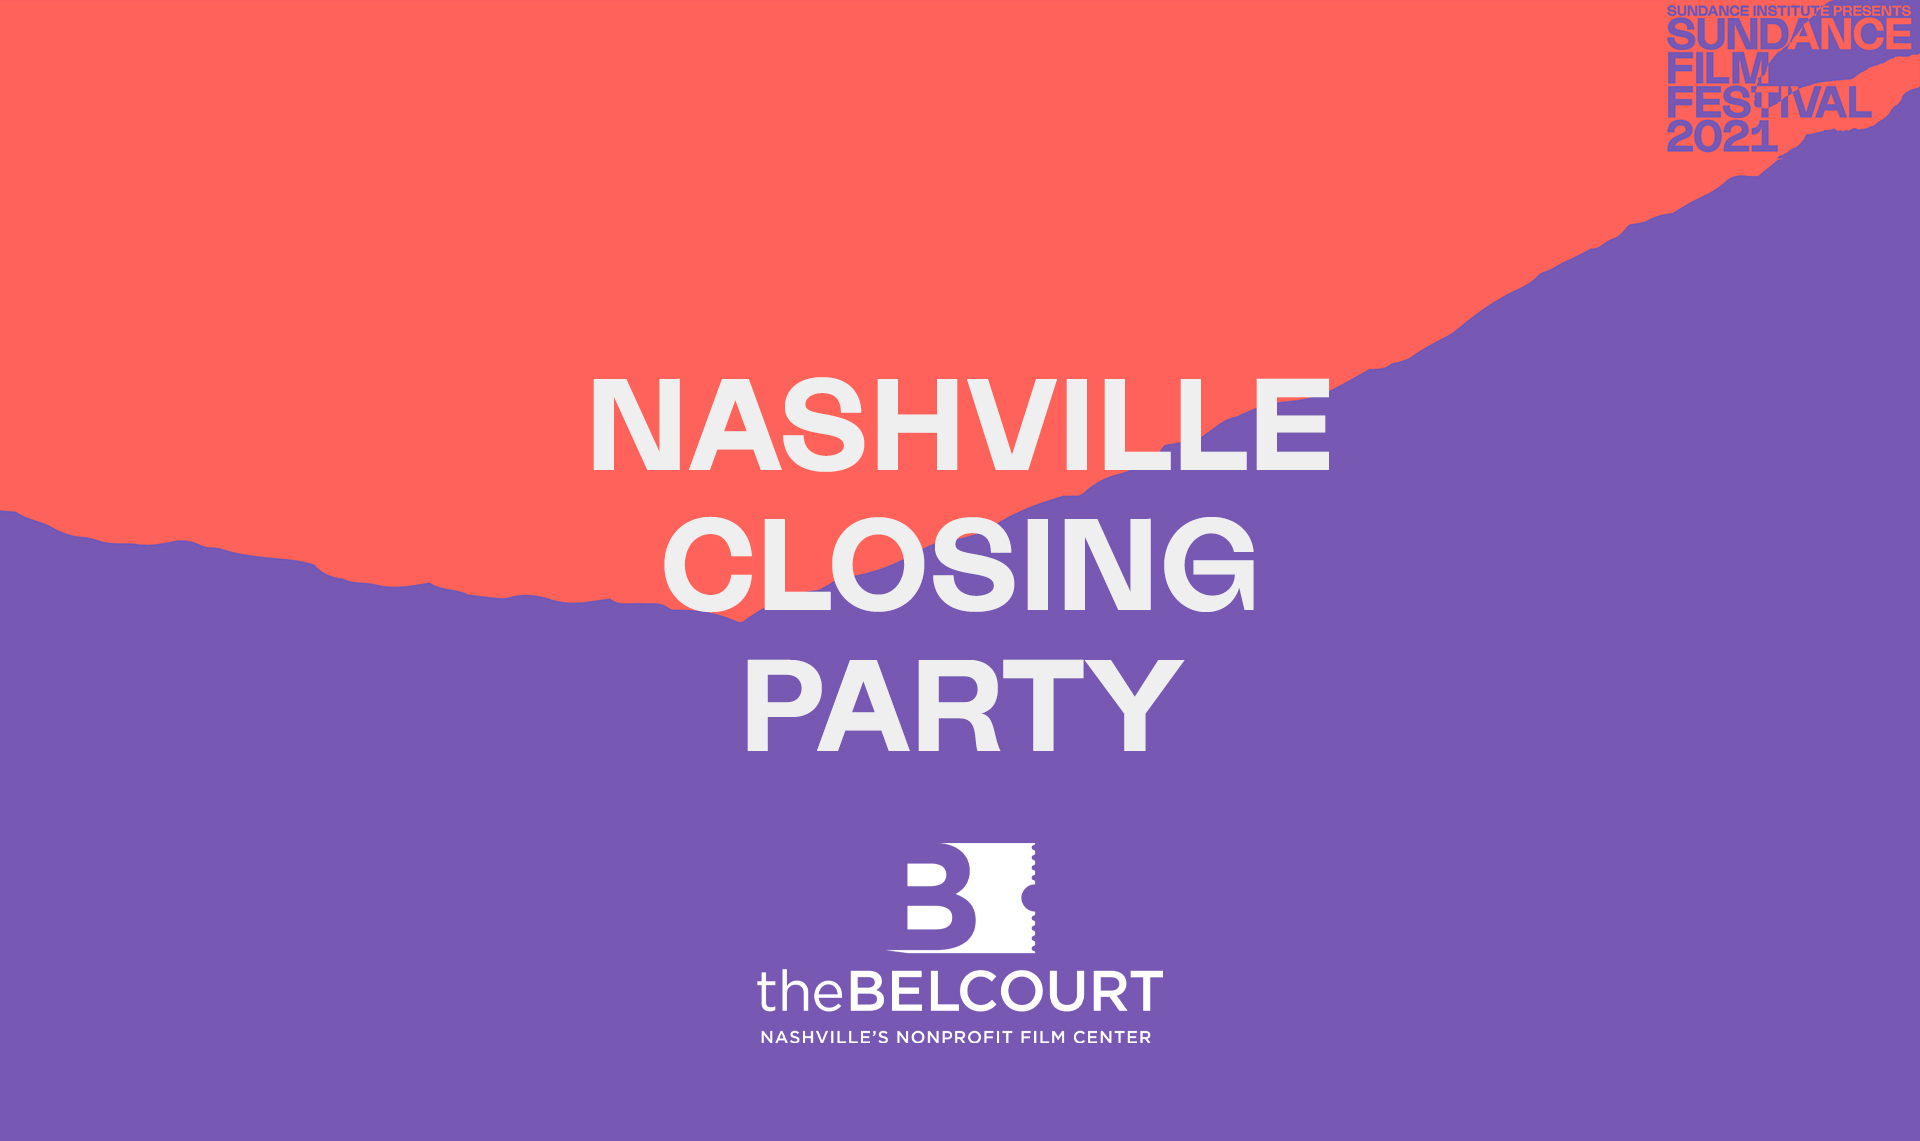 Sundance Beyond Film: Nashville Closing Party